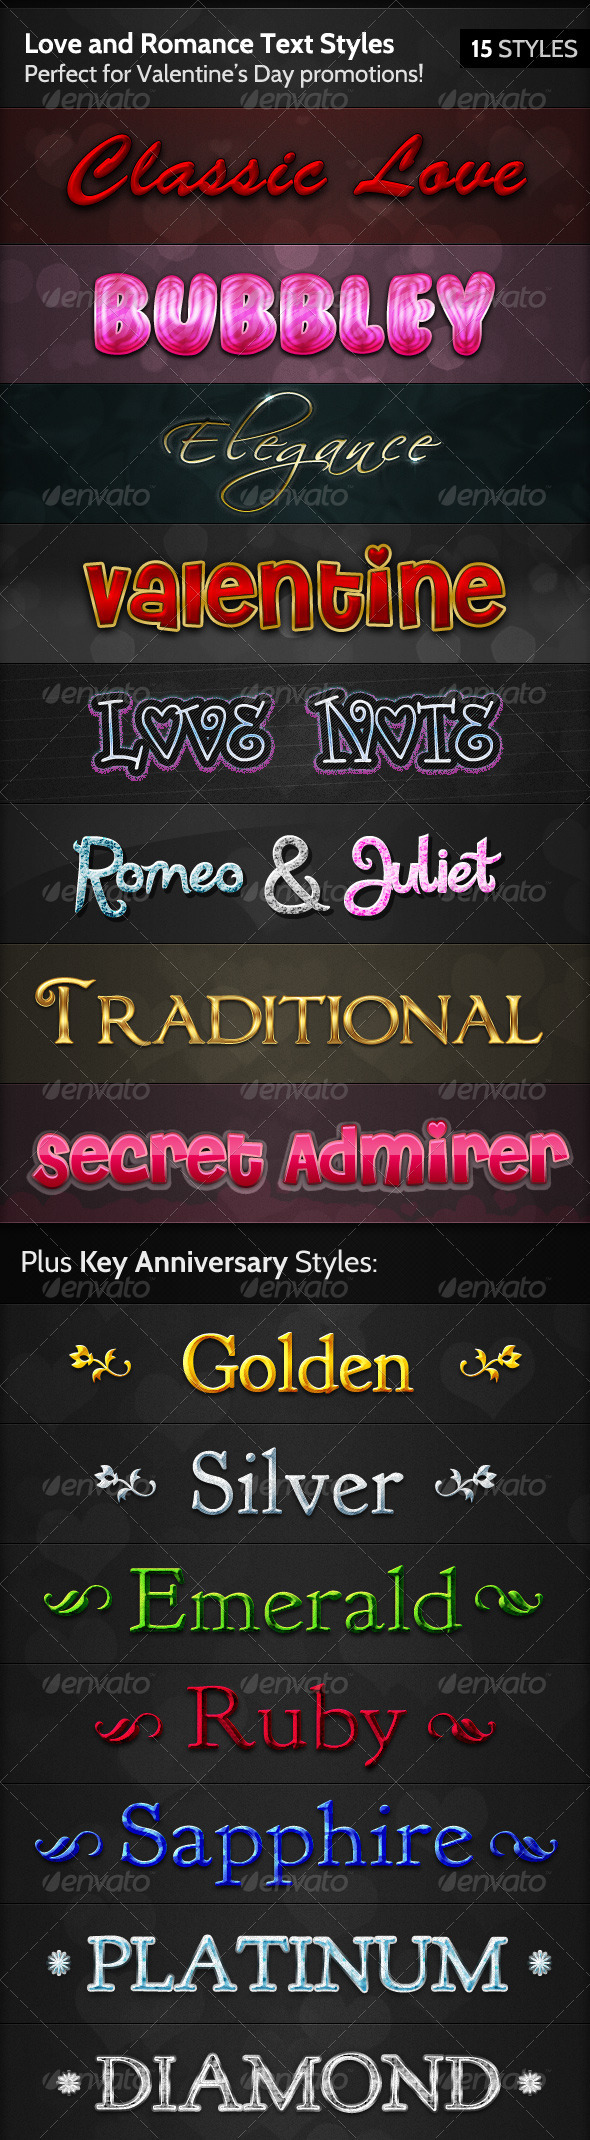 GraphicRiver Love and Romance Text Styles 154496